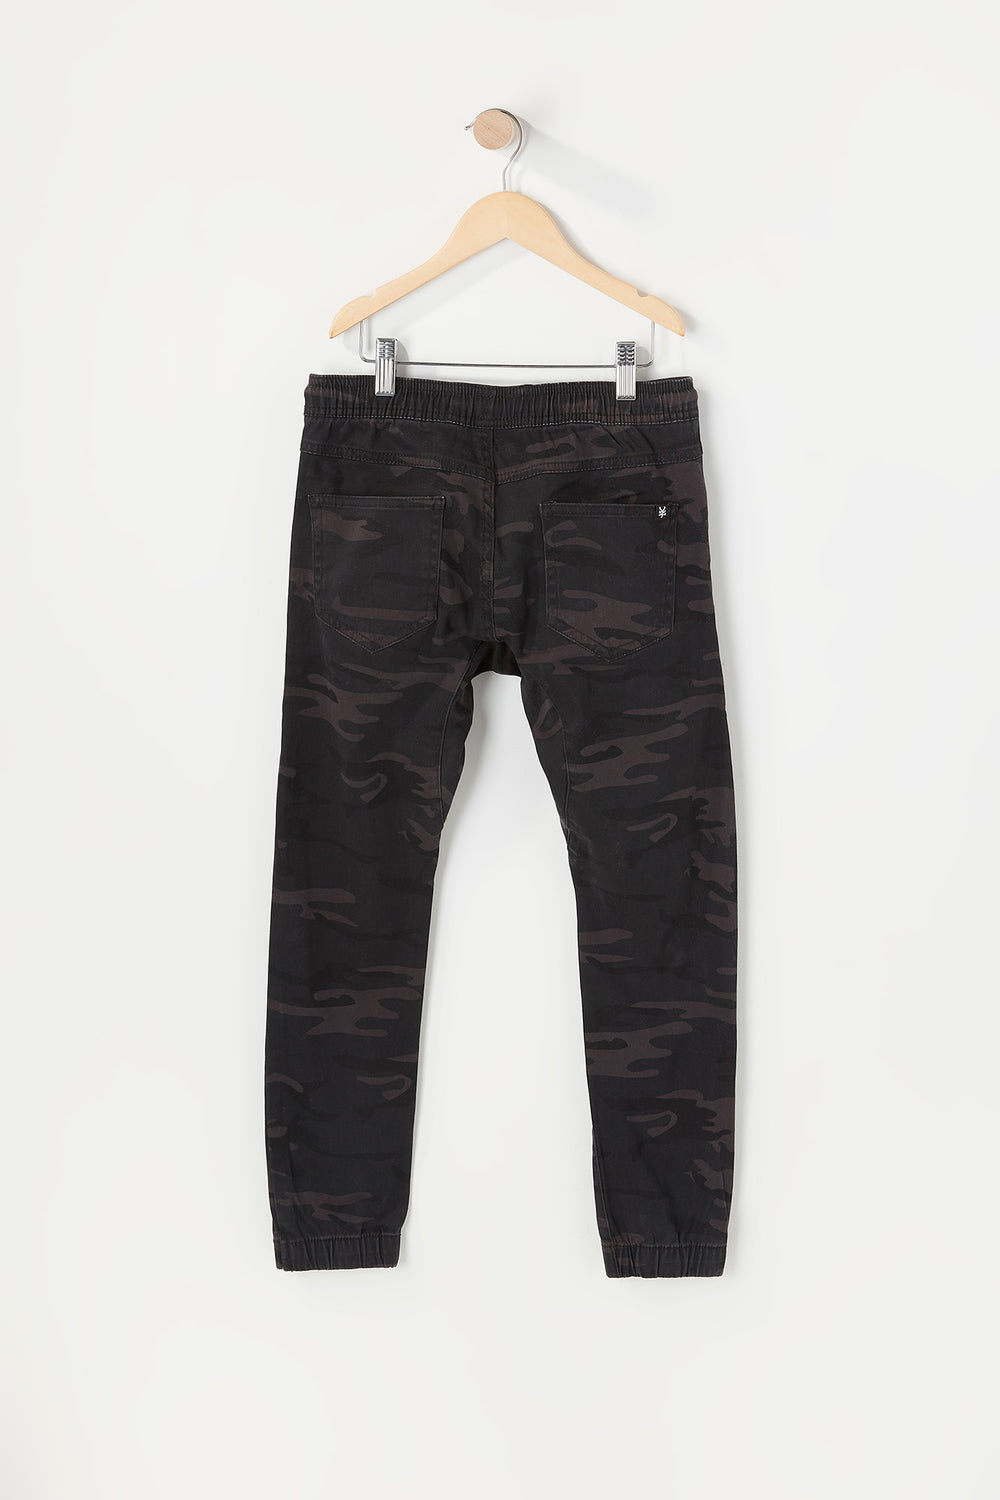 Zoo York Youth Twill 5-Pocket Camo Jogger Black with White